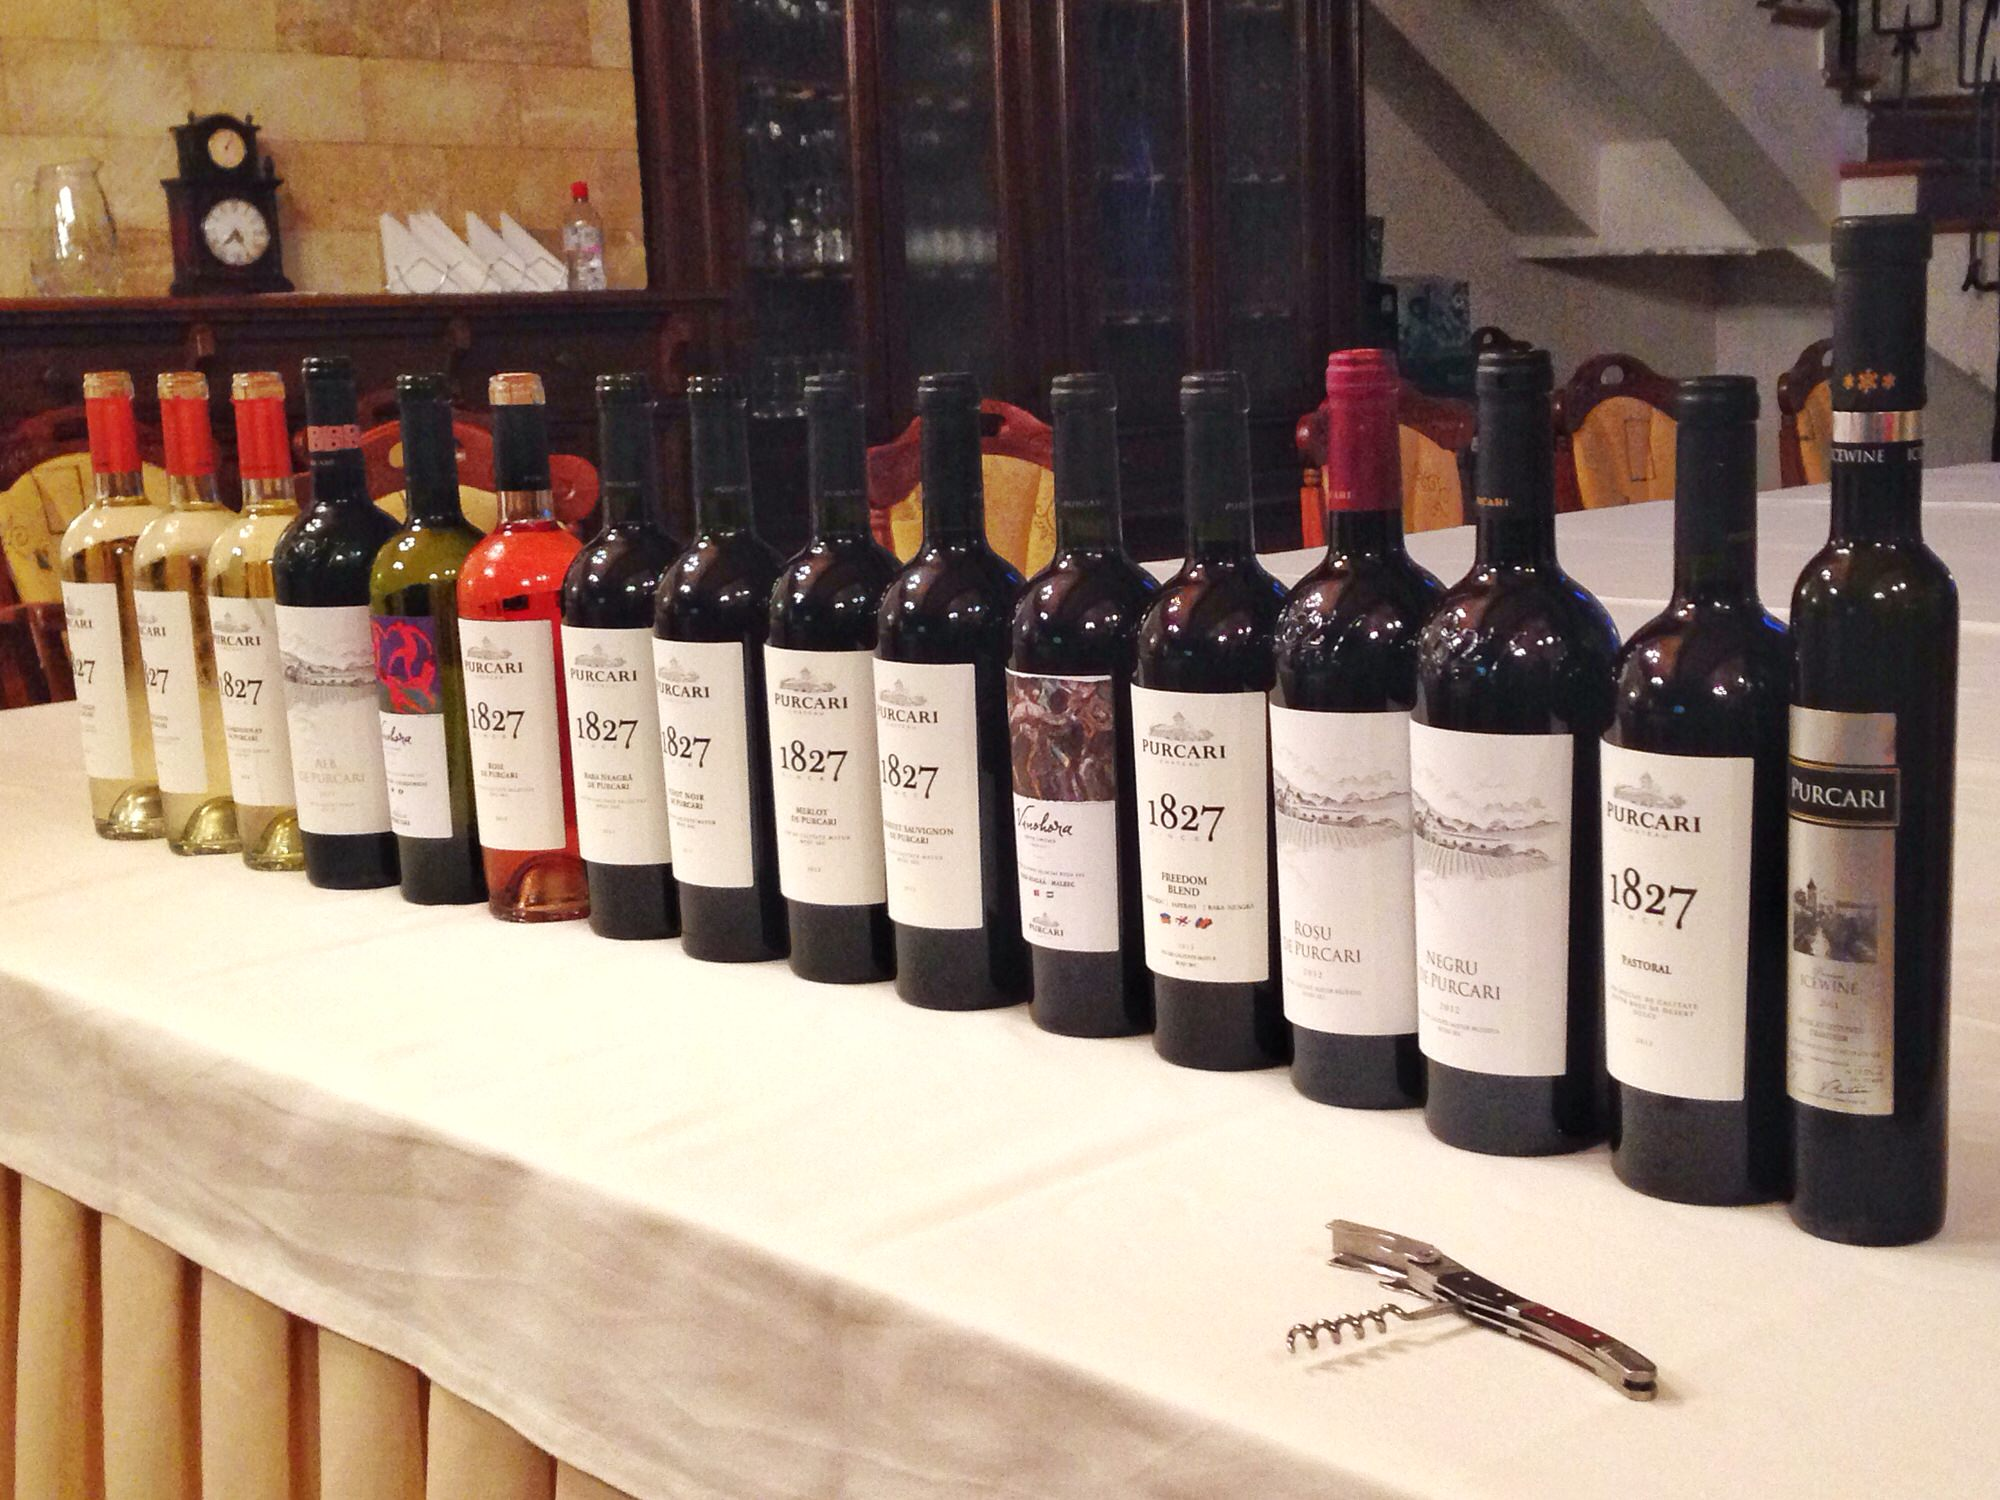 There are a lot of wines to taste -- Purcari has 16 on offer!